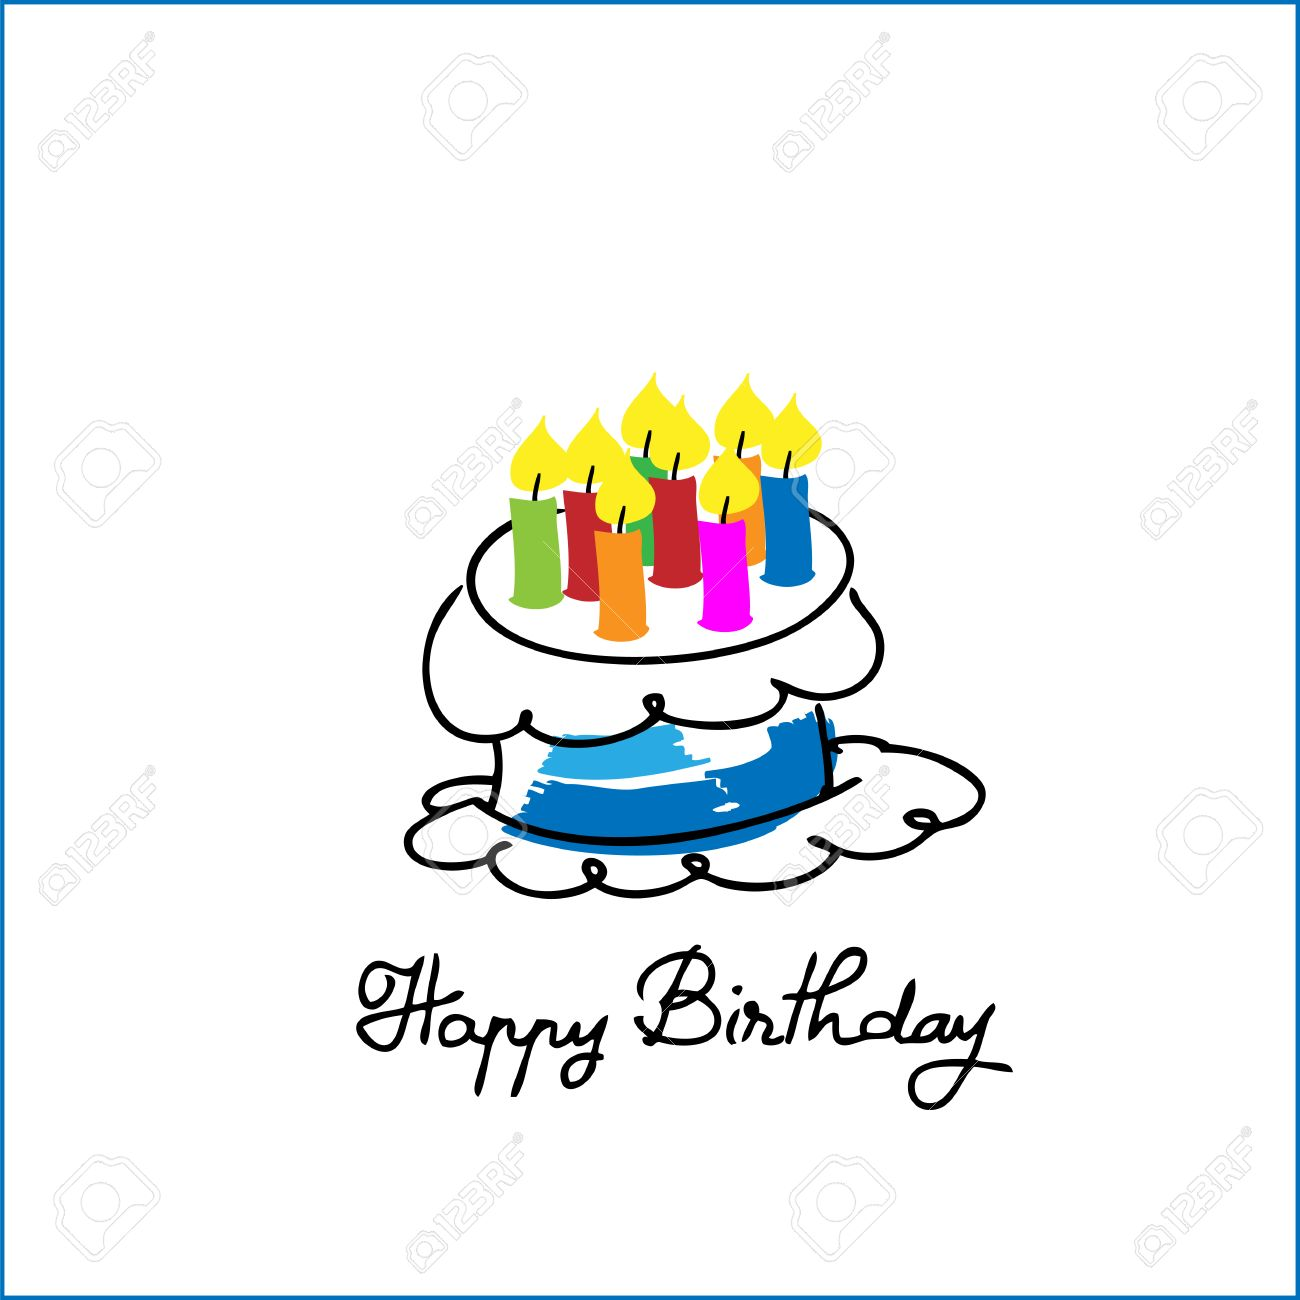 Birthday Cake Cartoon Drawing Vector Royalty Free Cliparts Vectors And Stock Illustration Image 34727025